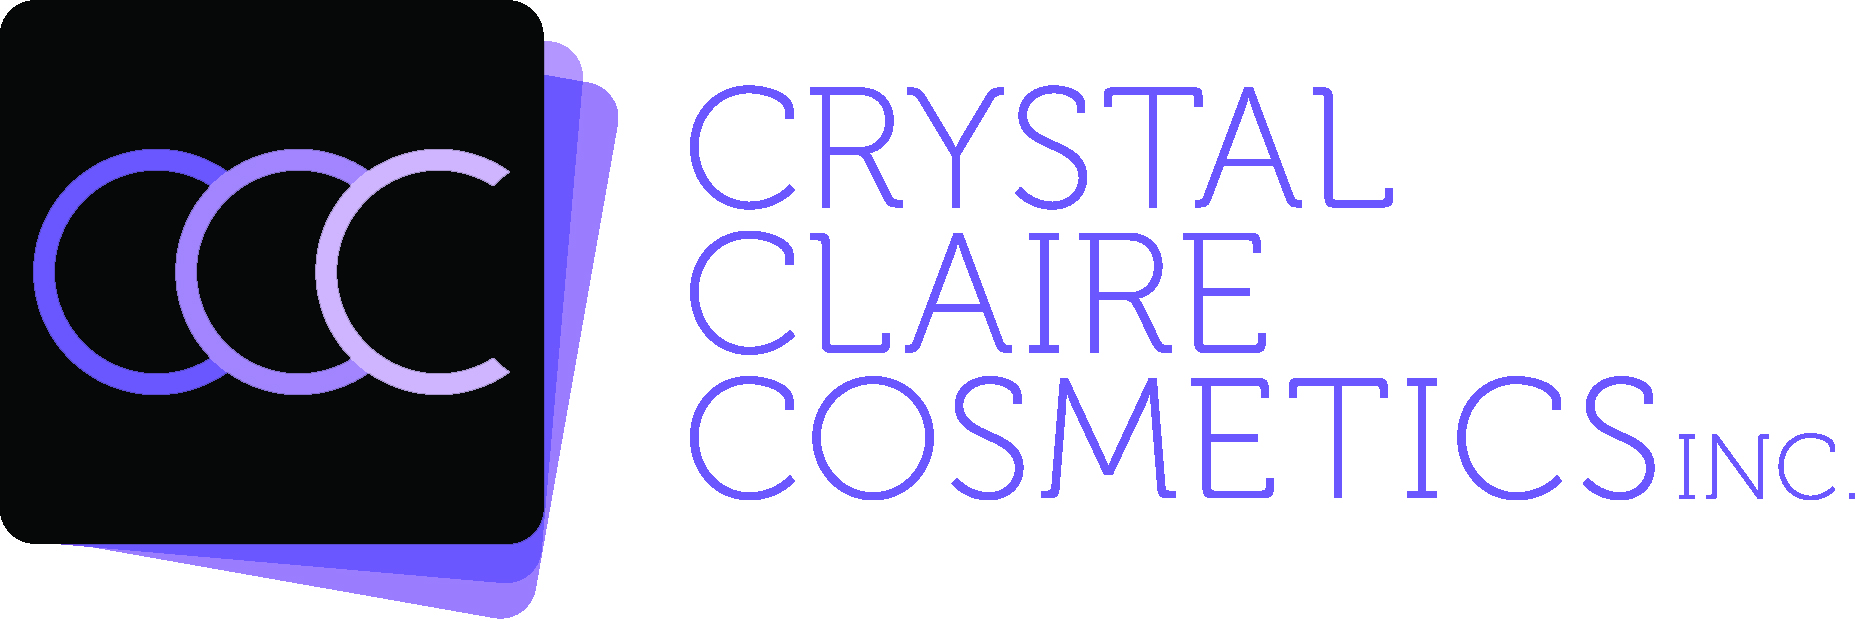 Crystalclaire